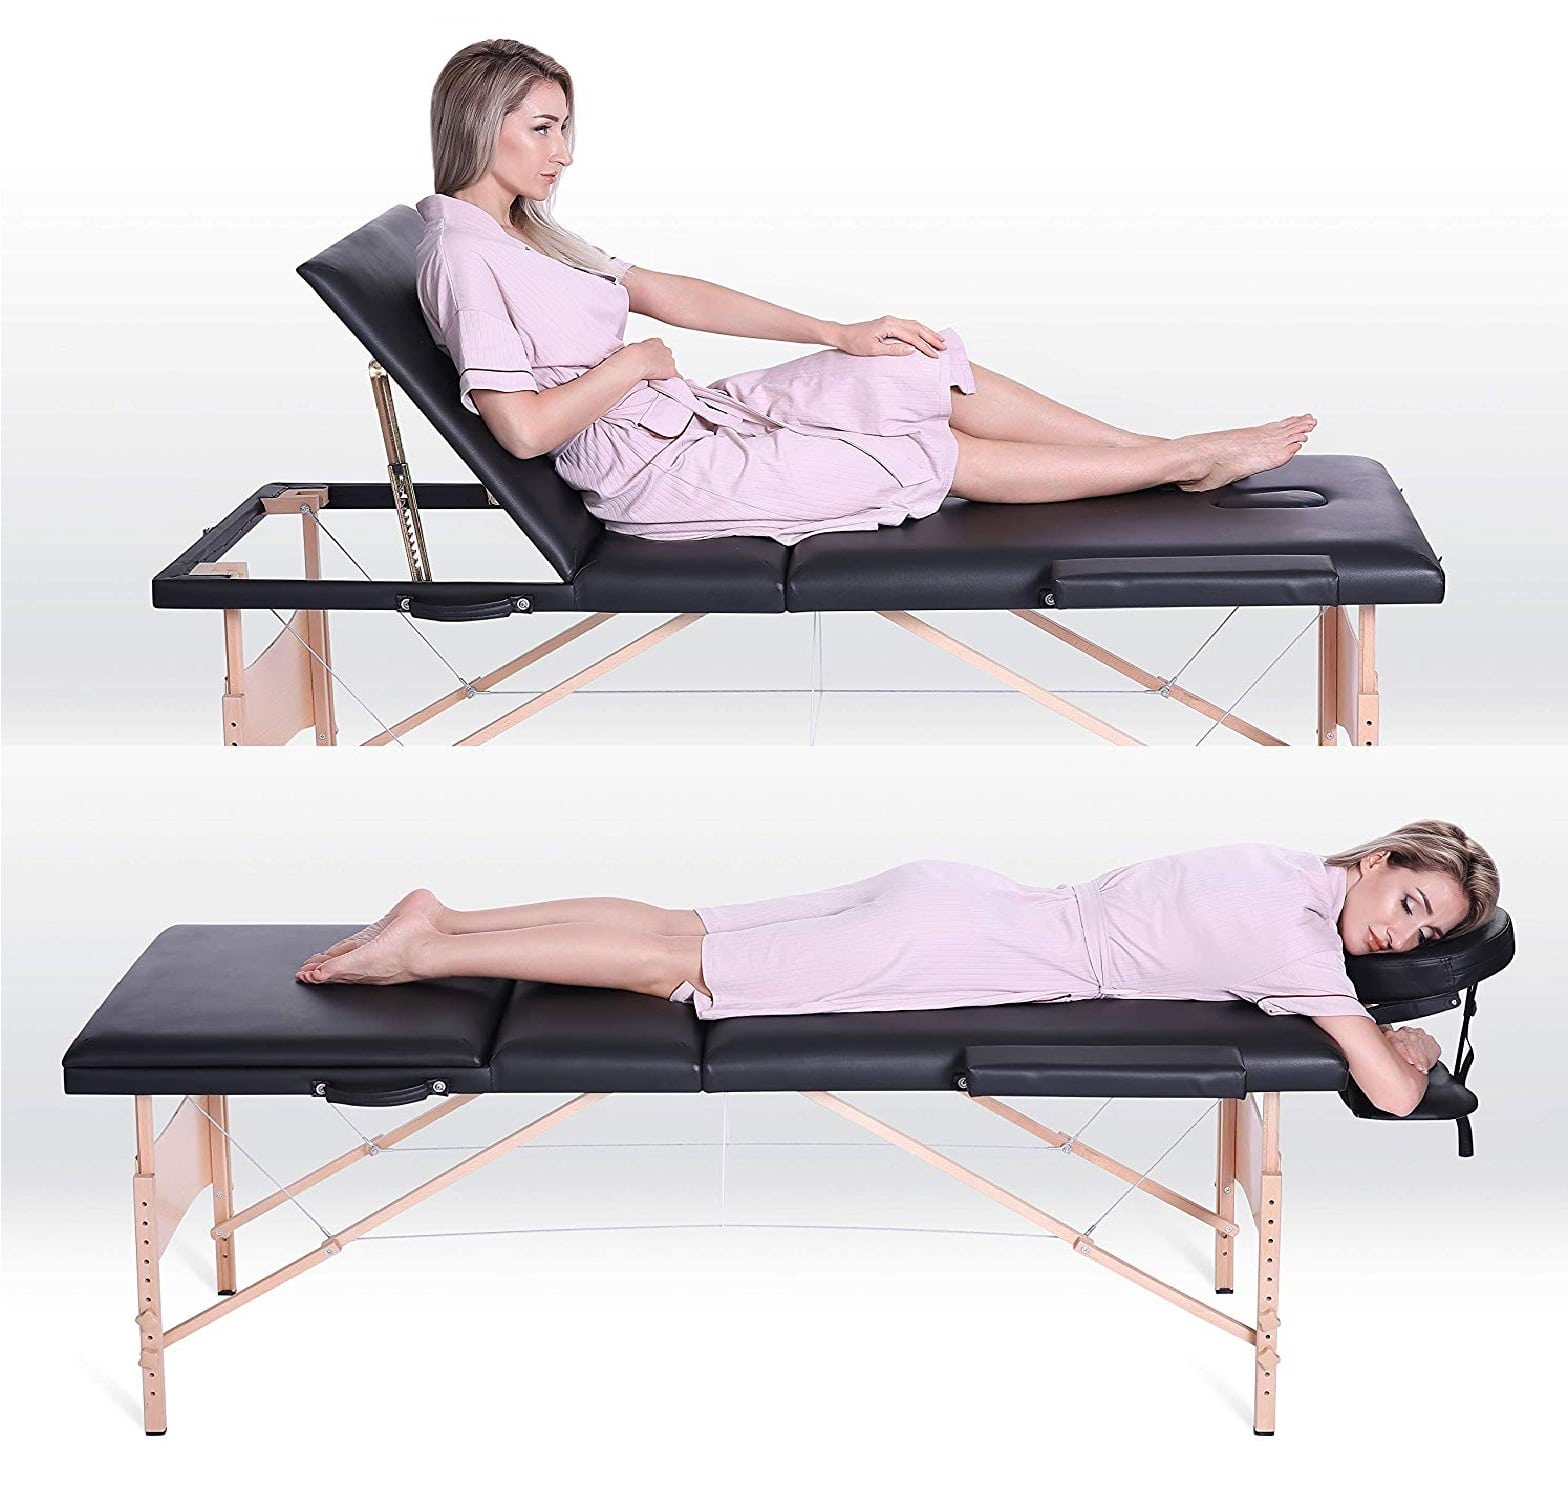 7.MaxKare Portable Massage Table 84' With Carrying Bag & Accessories, 3 Fold, Extra Wide, Black.